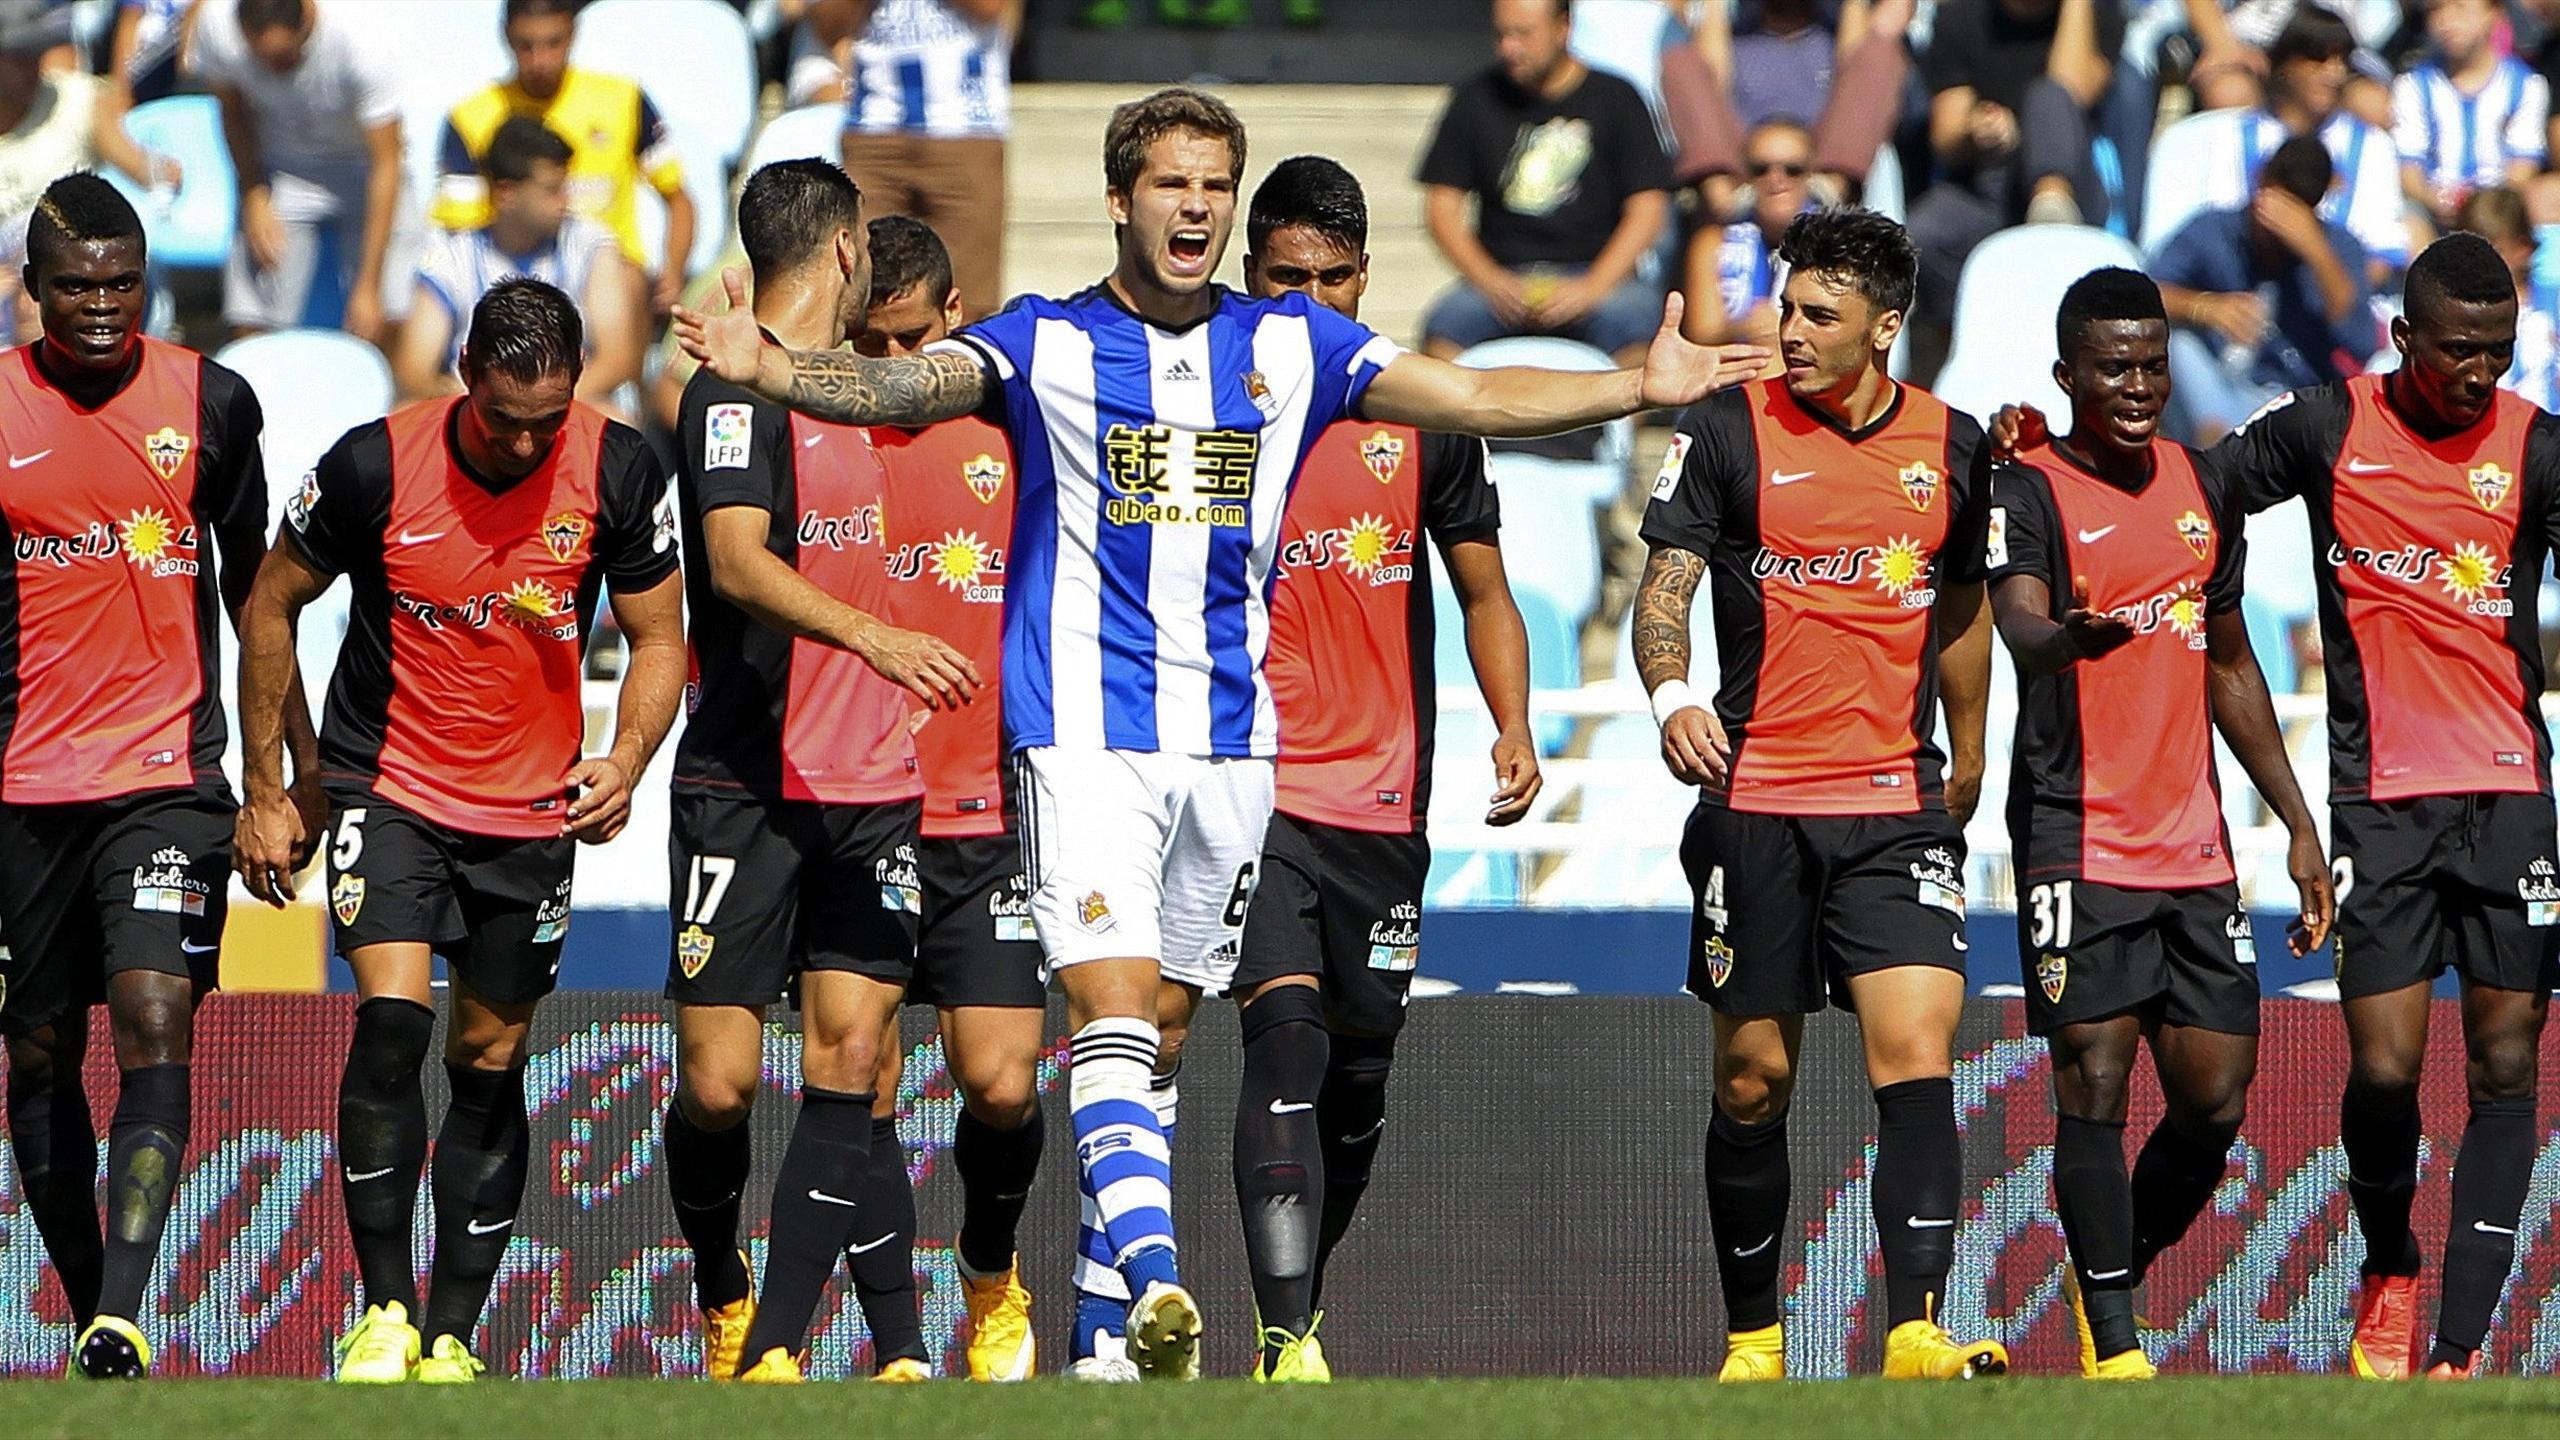 Video: Real Sociedad vs Almeria